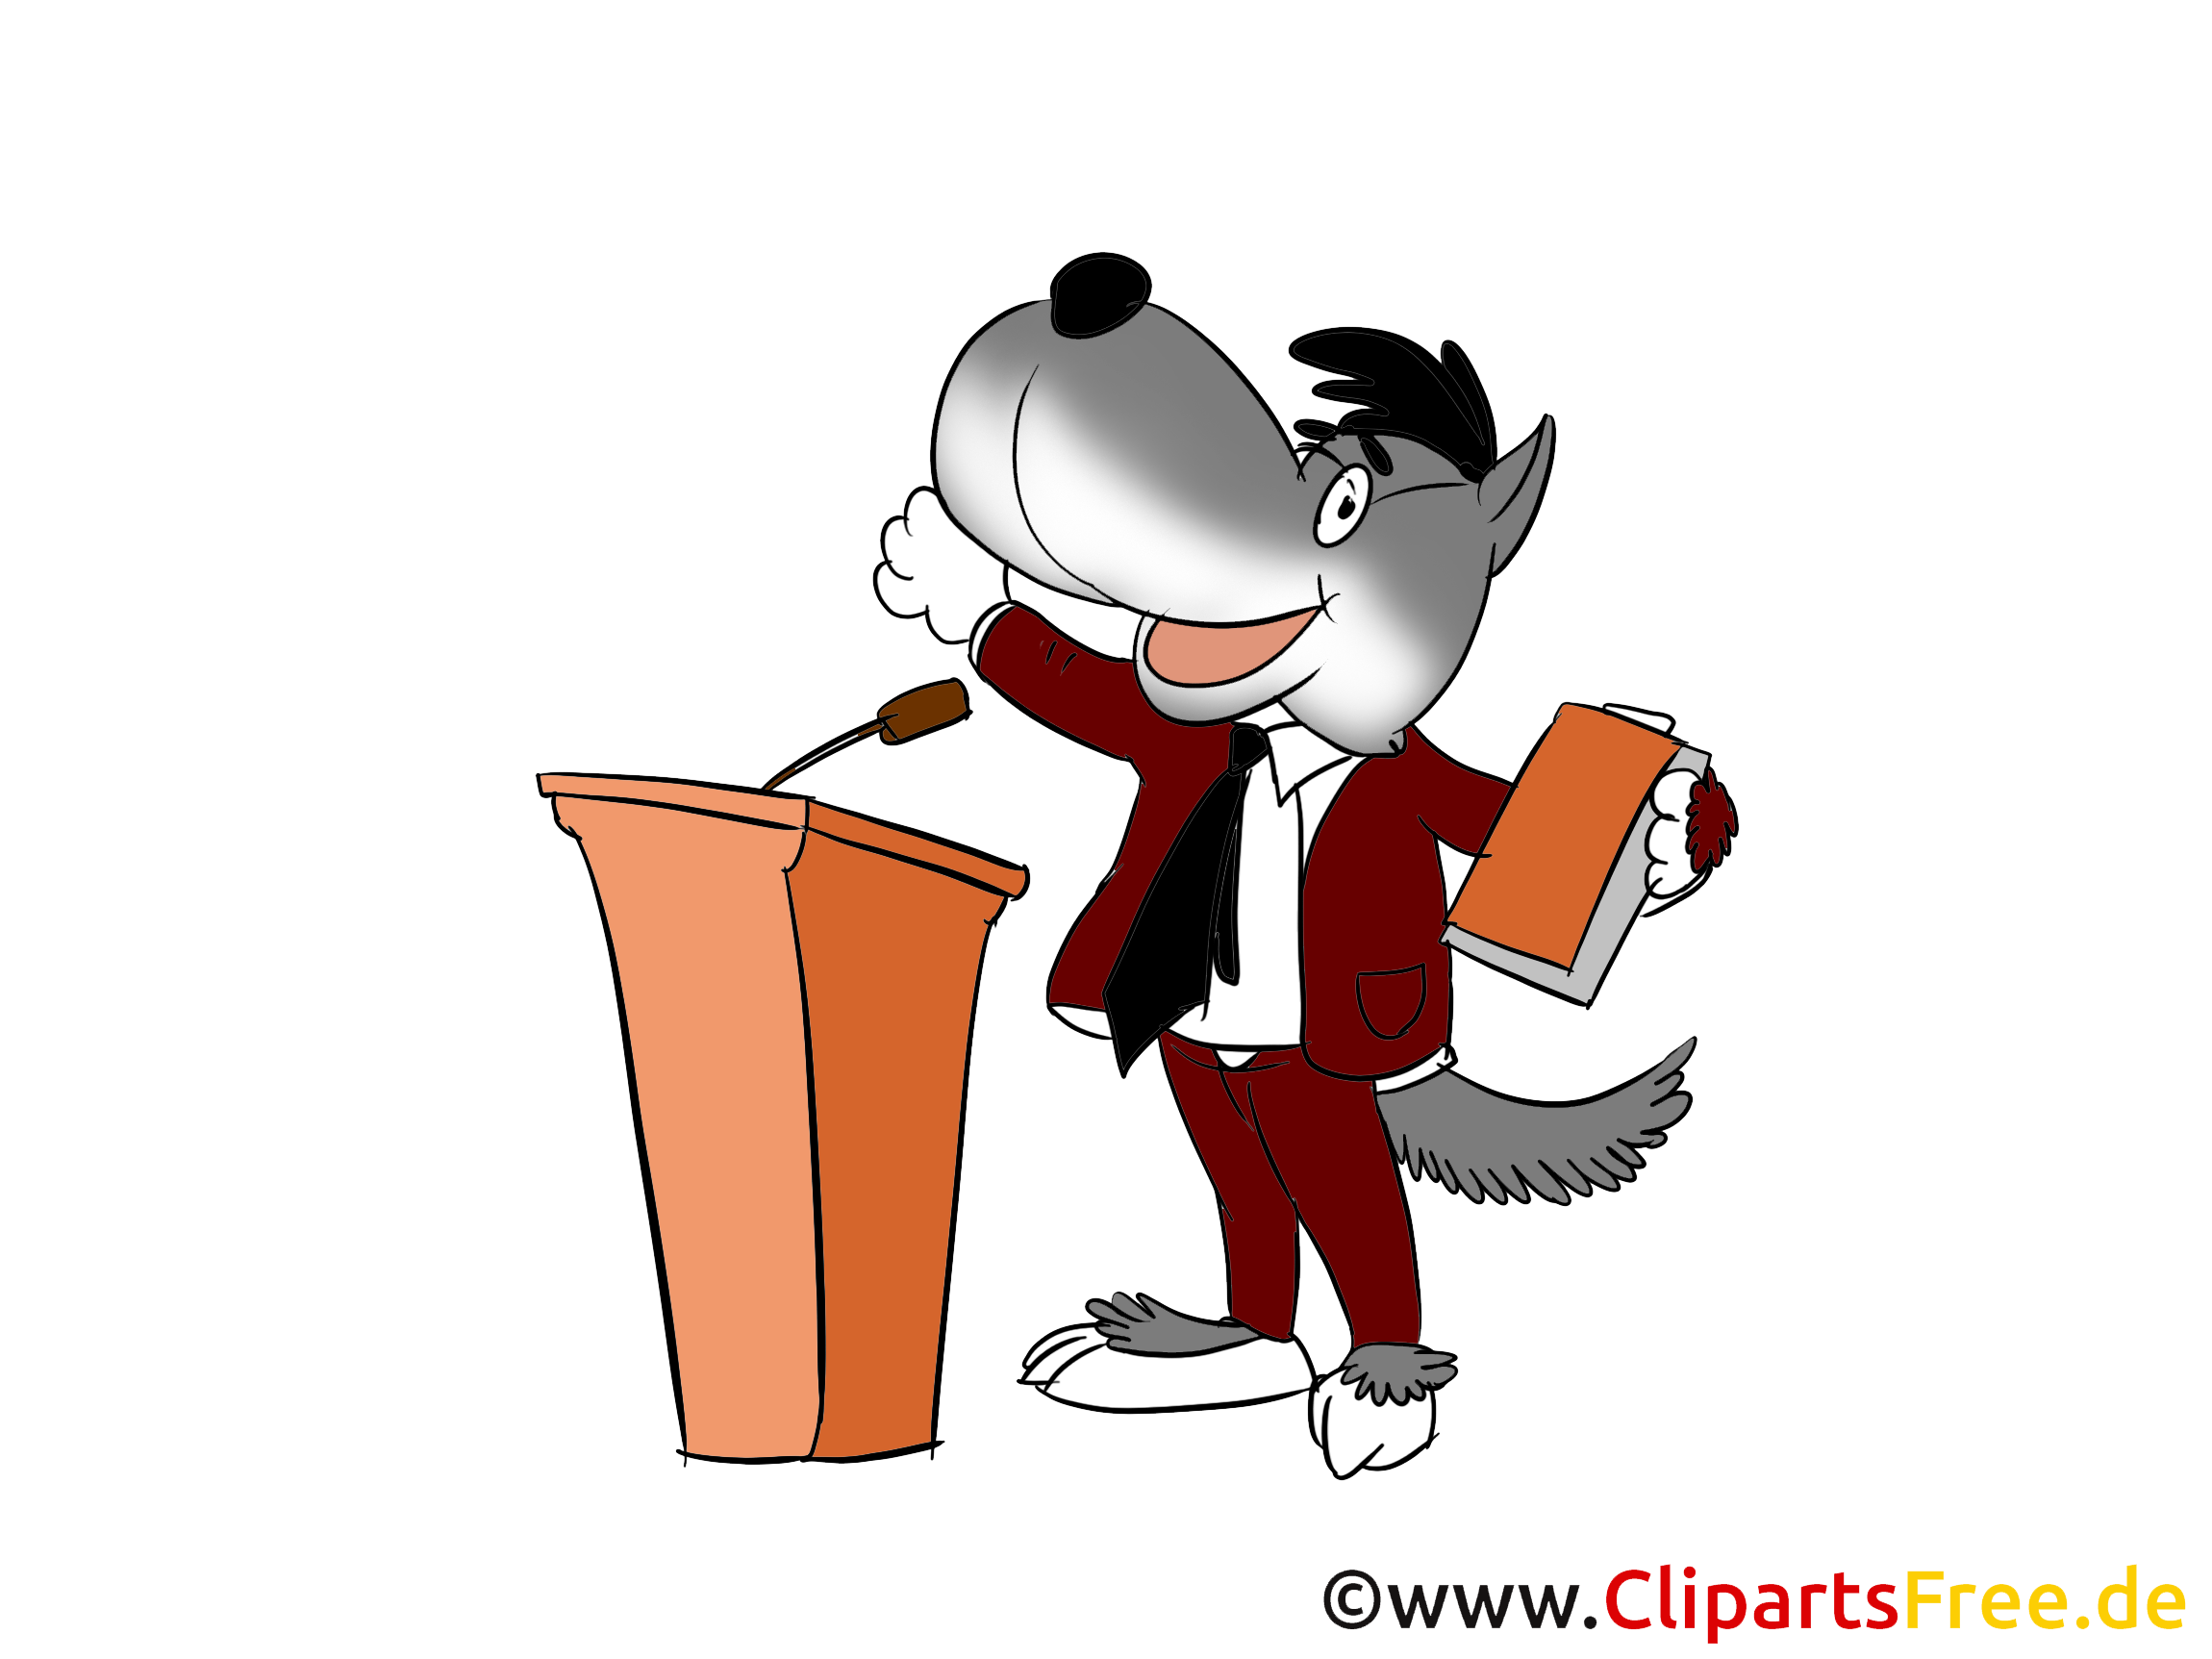 Presentation Clipart free download